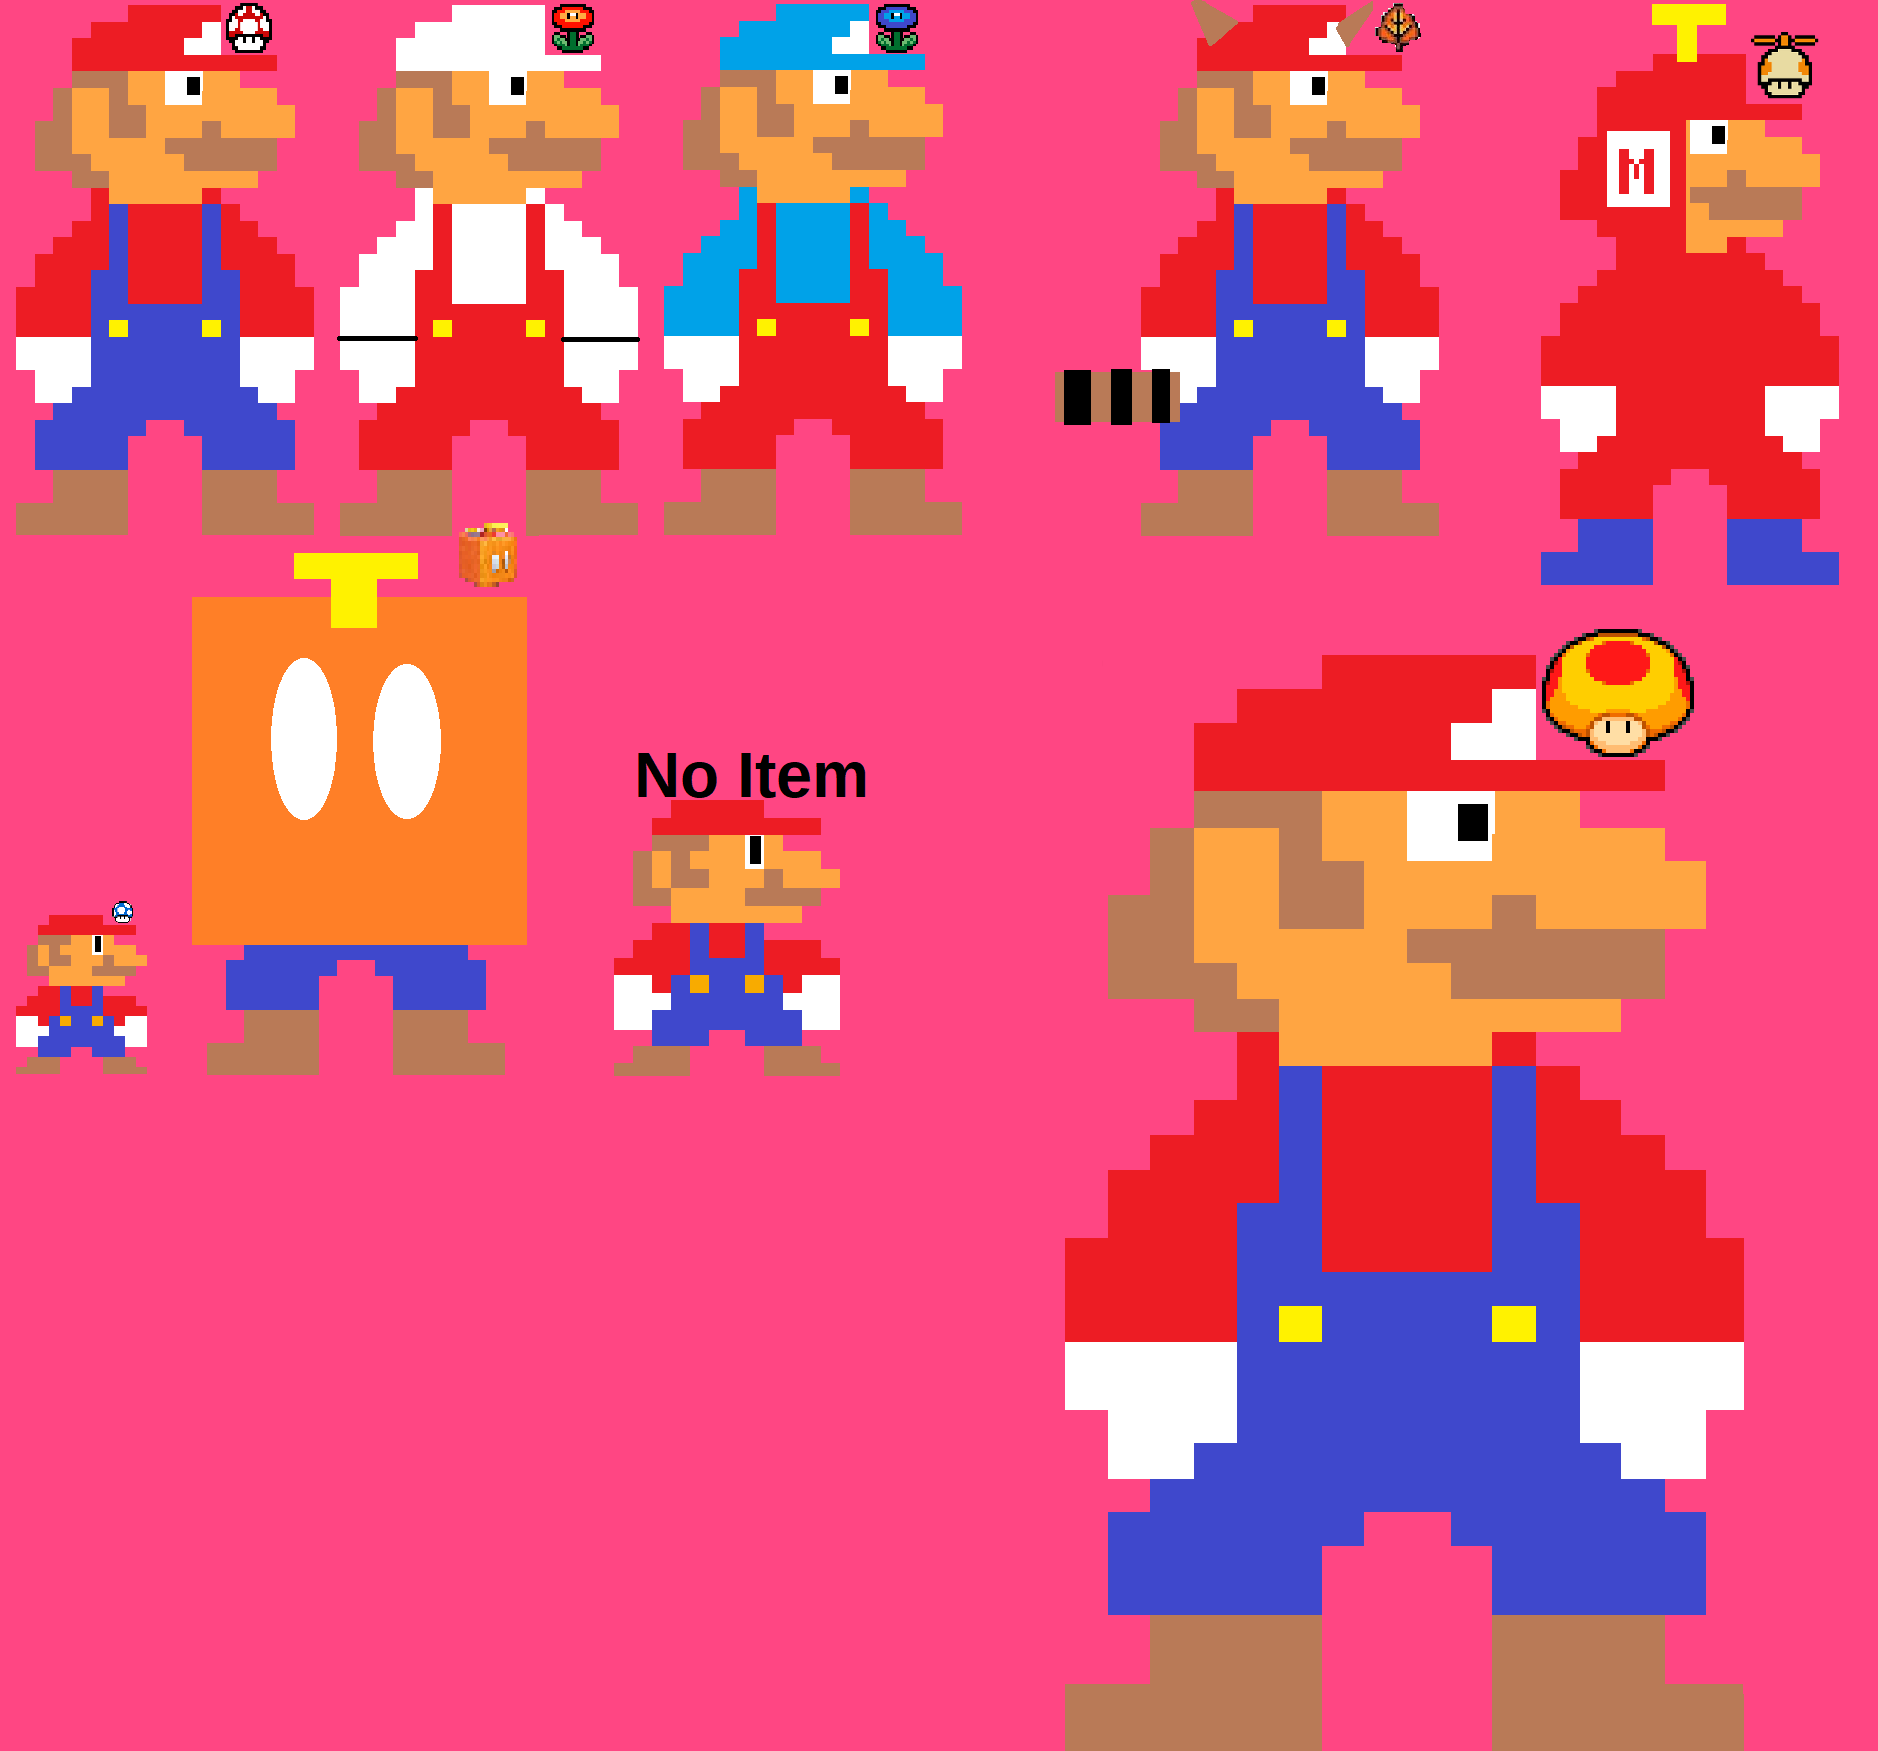 New 8 bit mario power ups by cooldude4342135 on newgrounds - Pictures of 8 bit mario ...